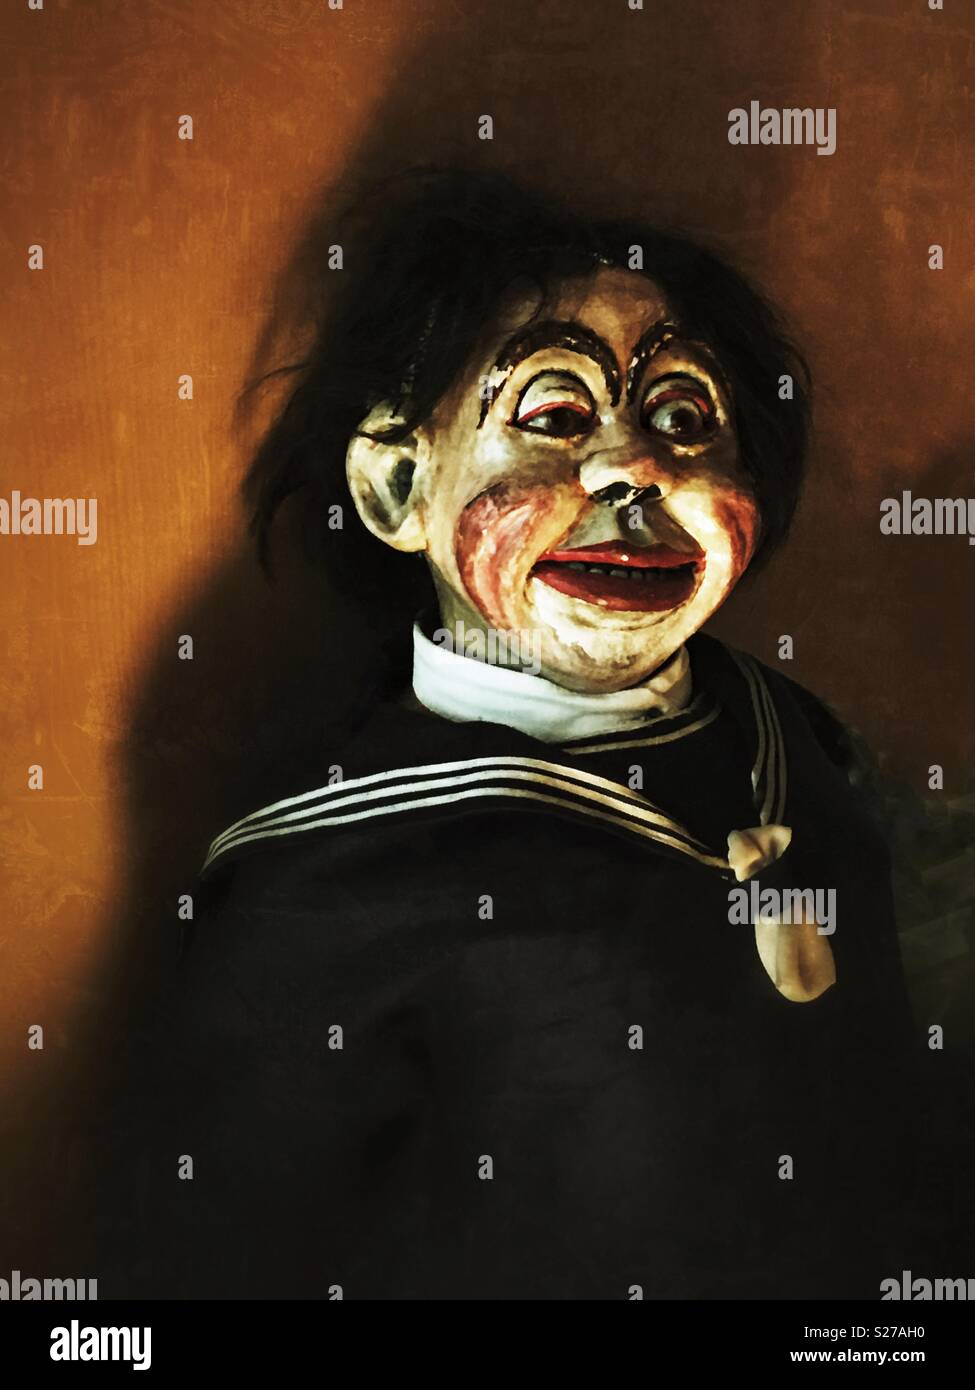 Creepy Stock Photos & Creepy Stock Images - Page 3 - Alamy